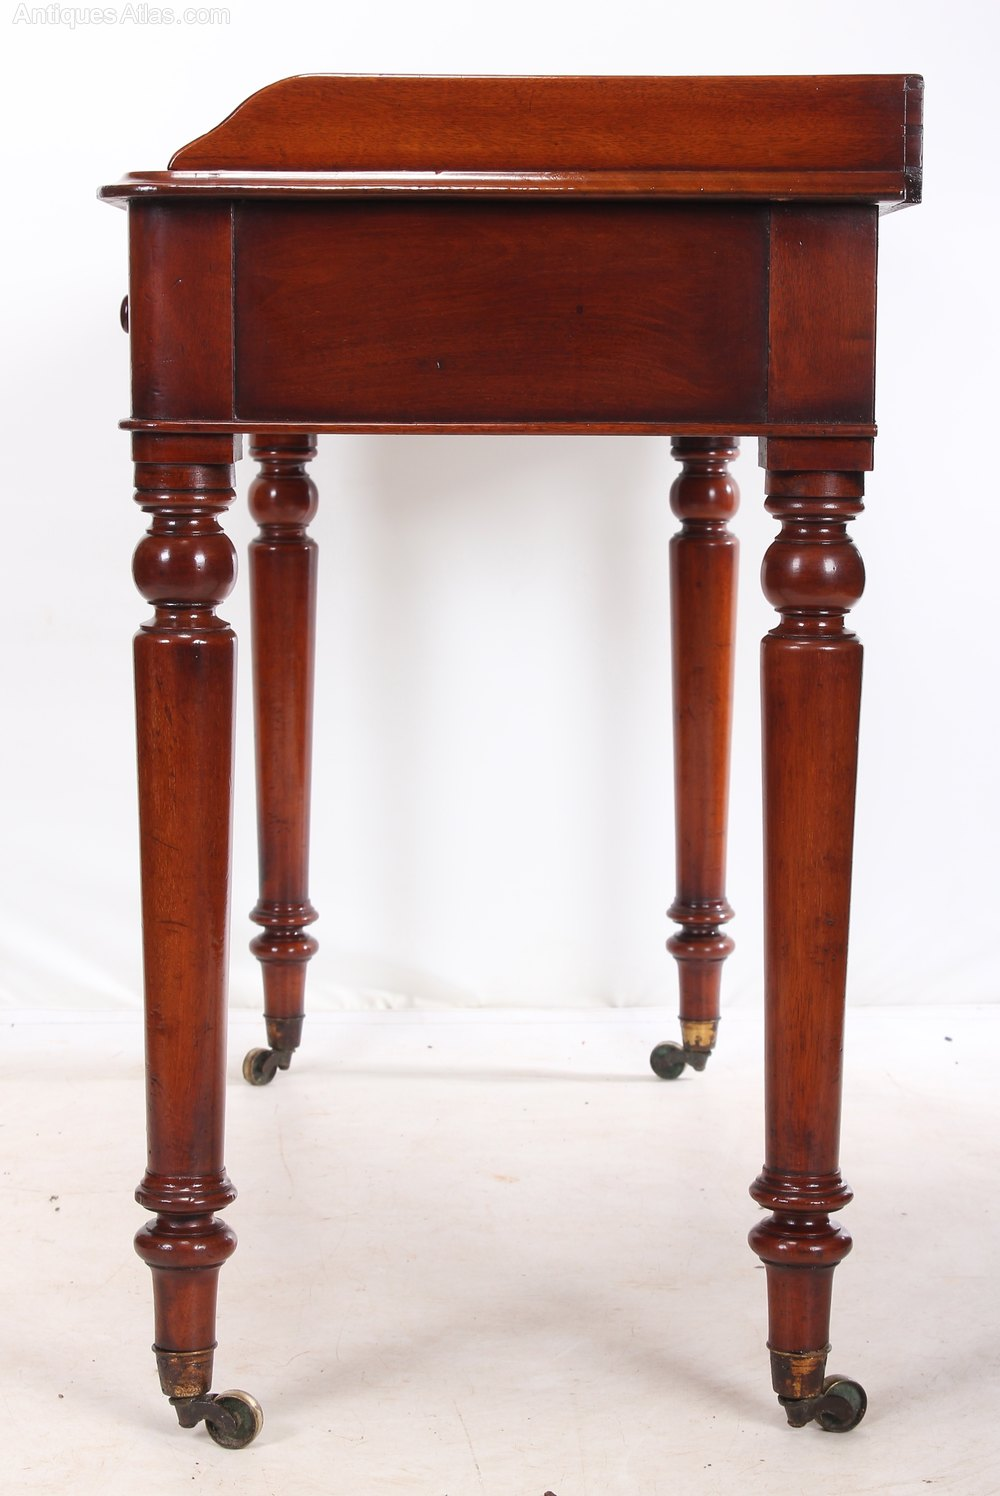 this mahogany hall table is in showroom condition ready for the home